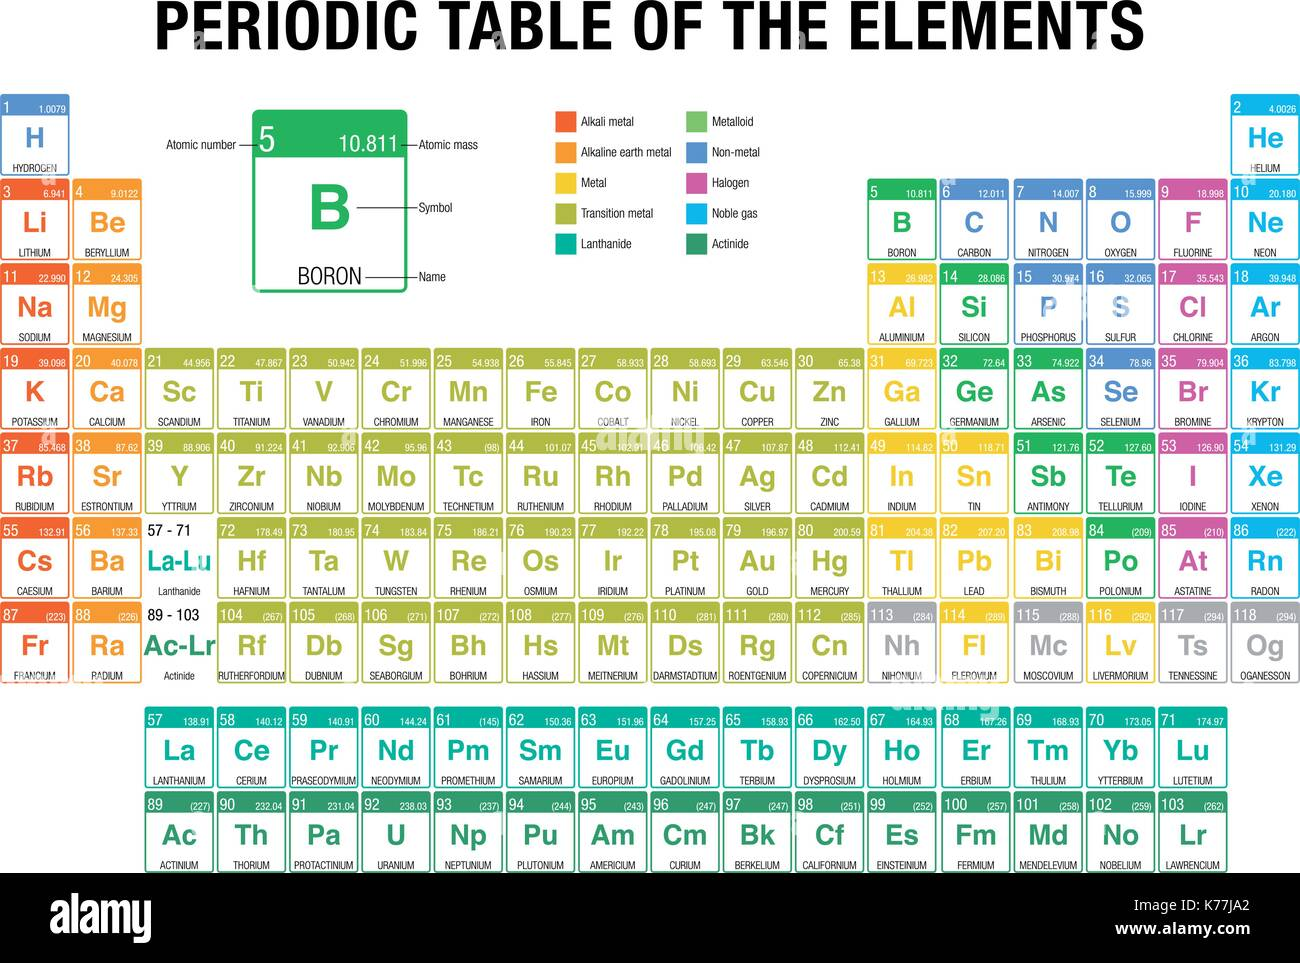 Periodic table of the elements with the 4 new elements included on periodic table of the elements with the 4 new elements included on november 28 2016 by the iupac gamestrikefo Images